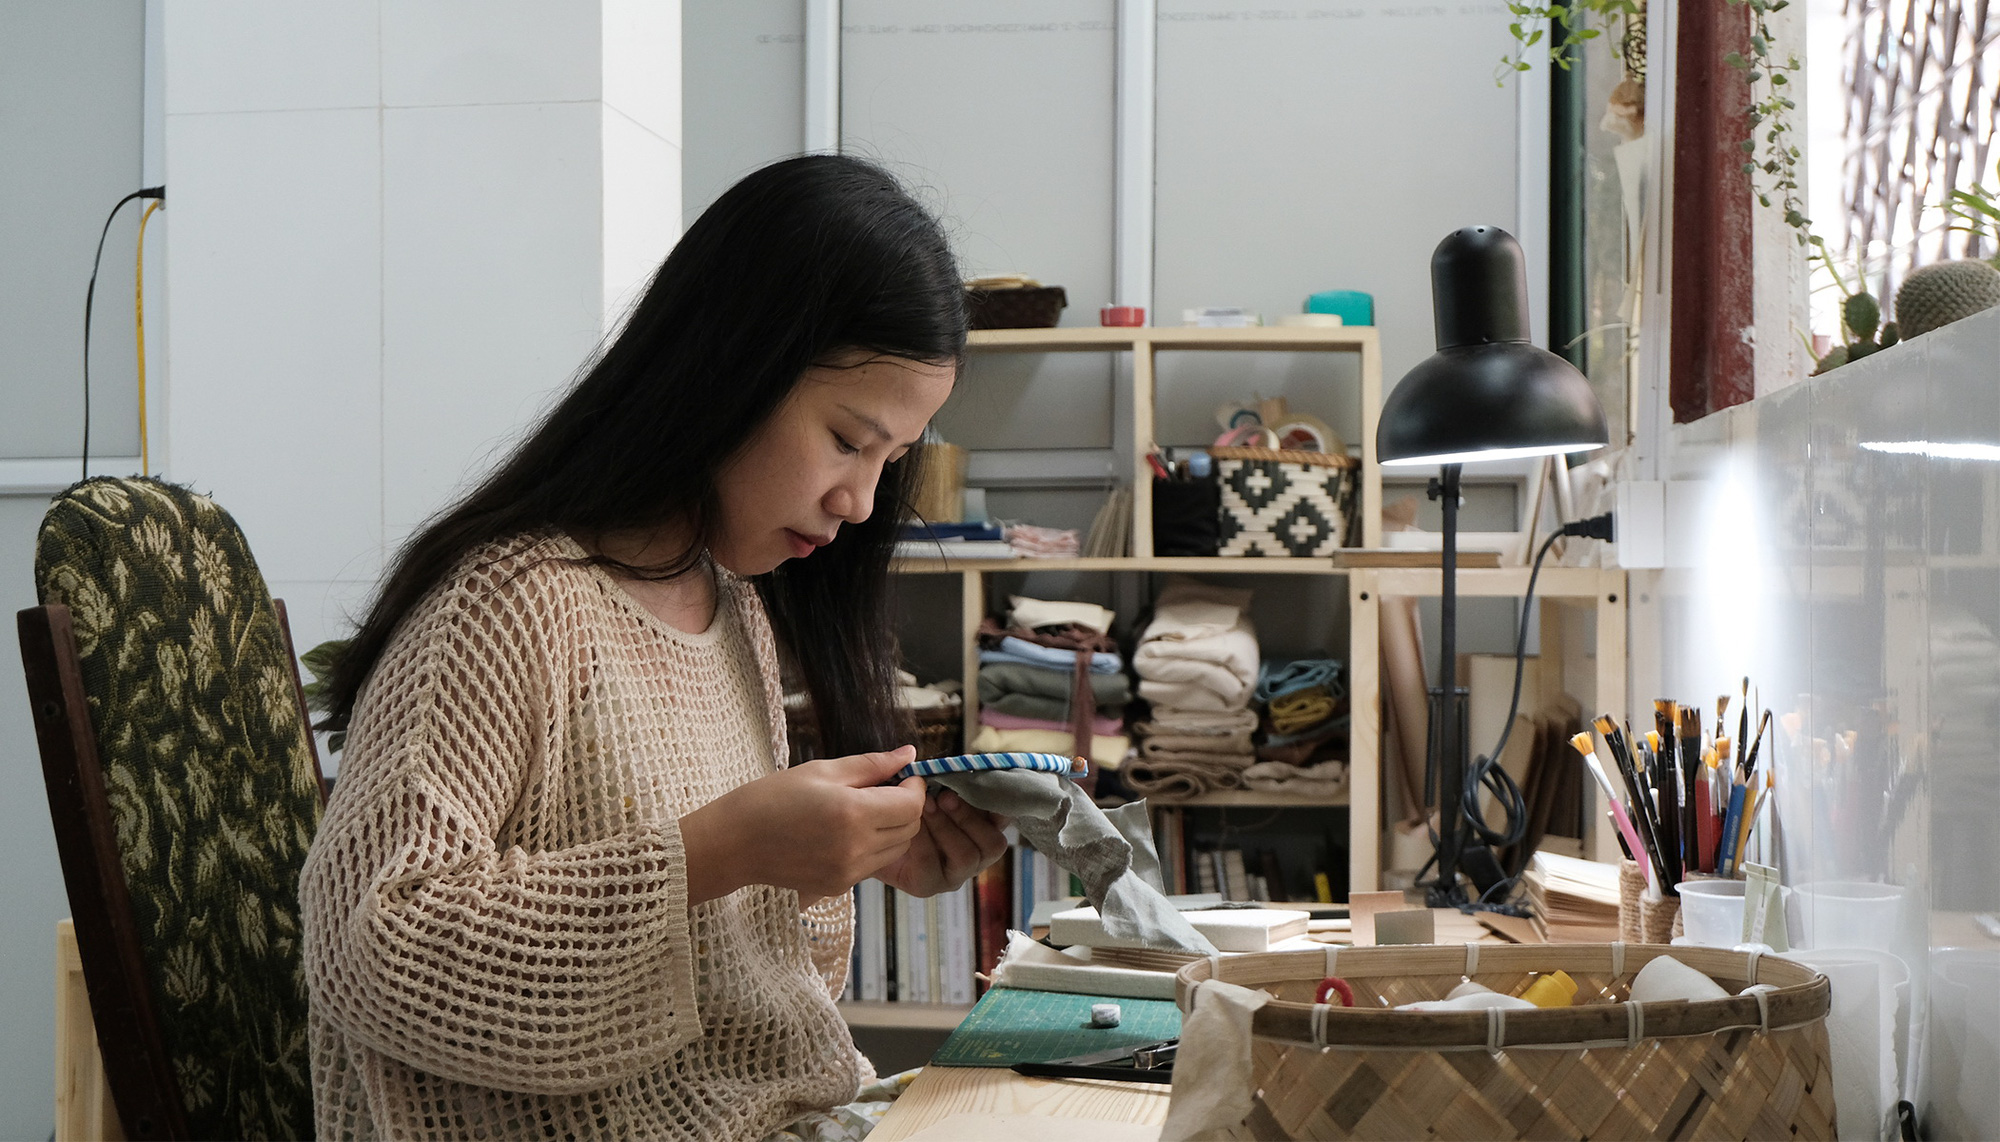 Vietnamese woman launches leaf-based startup